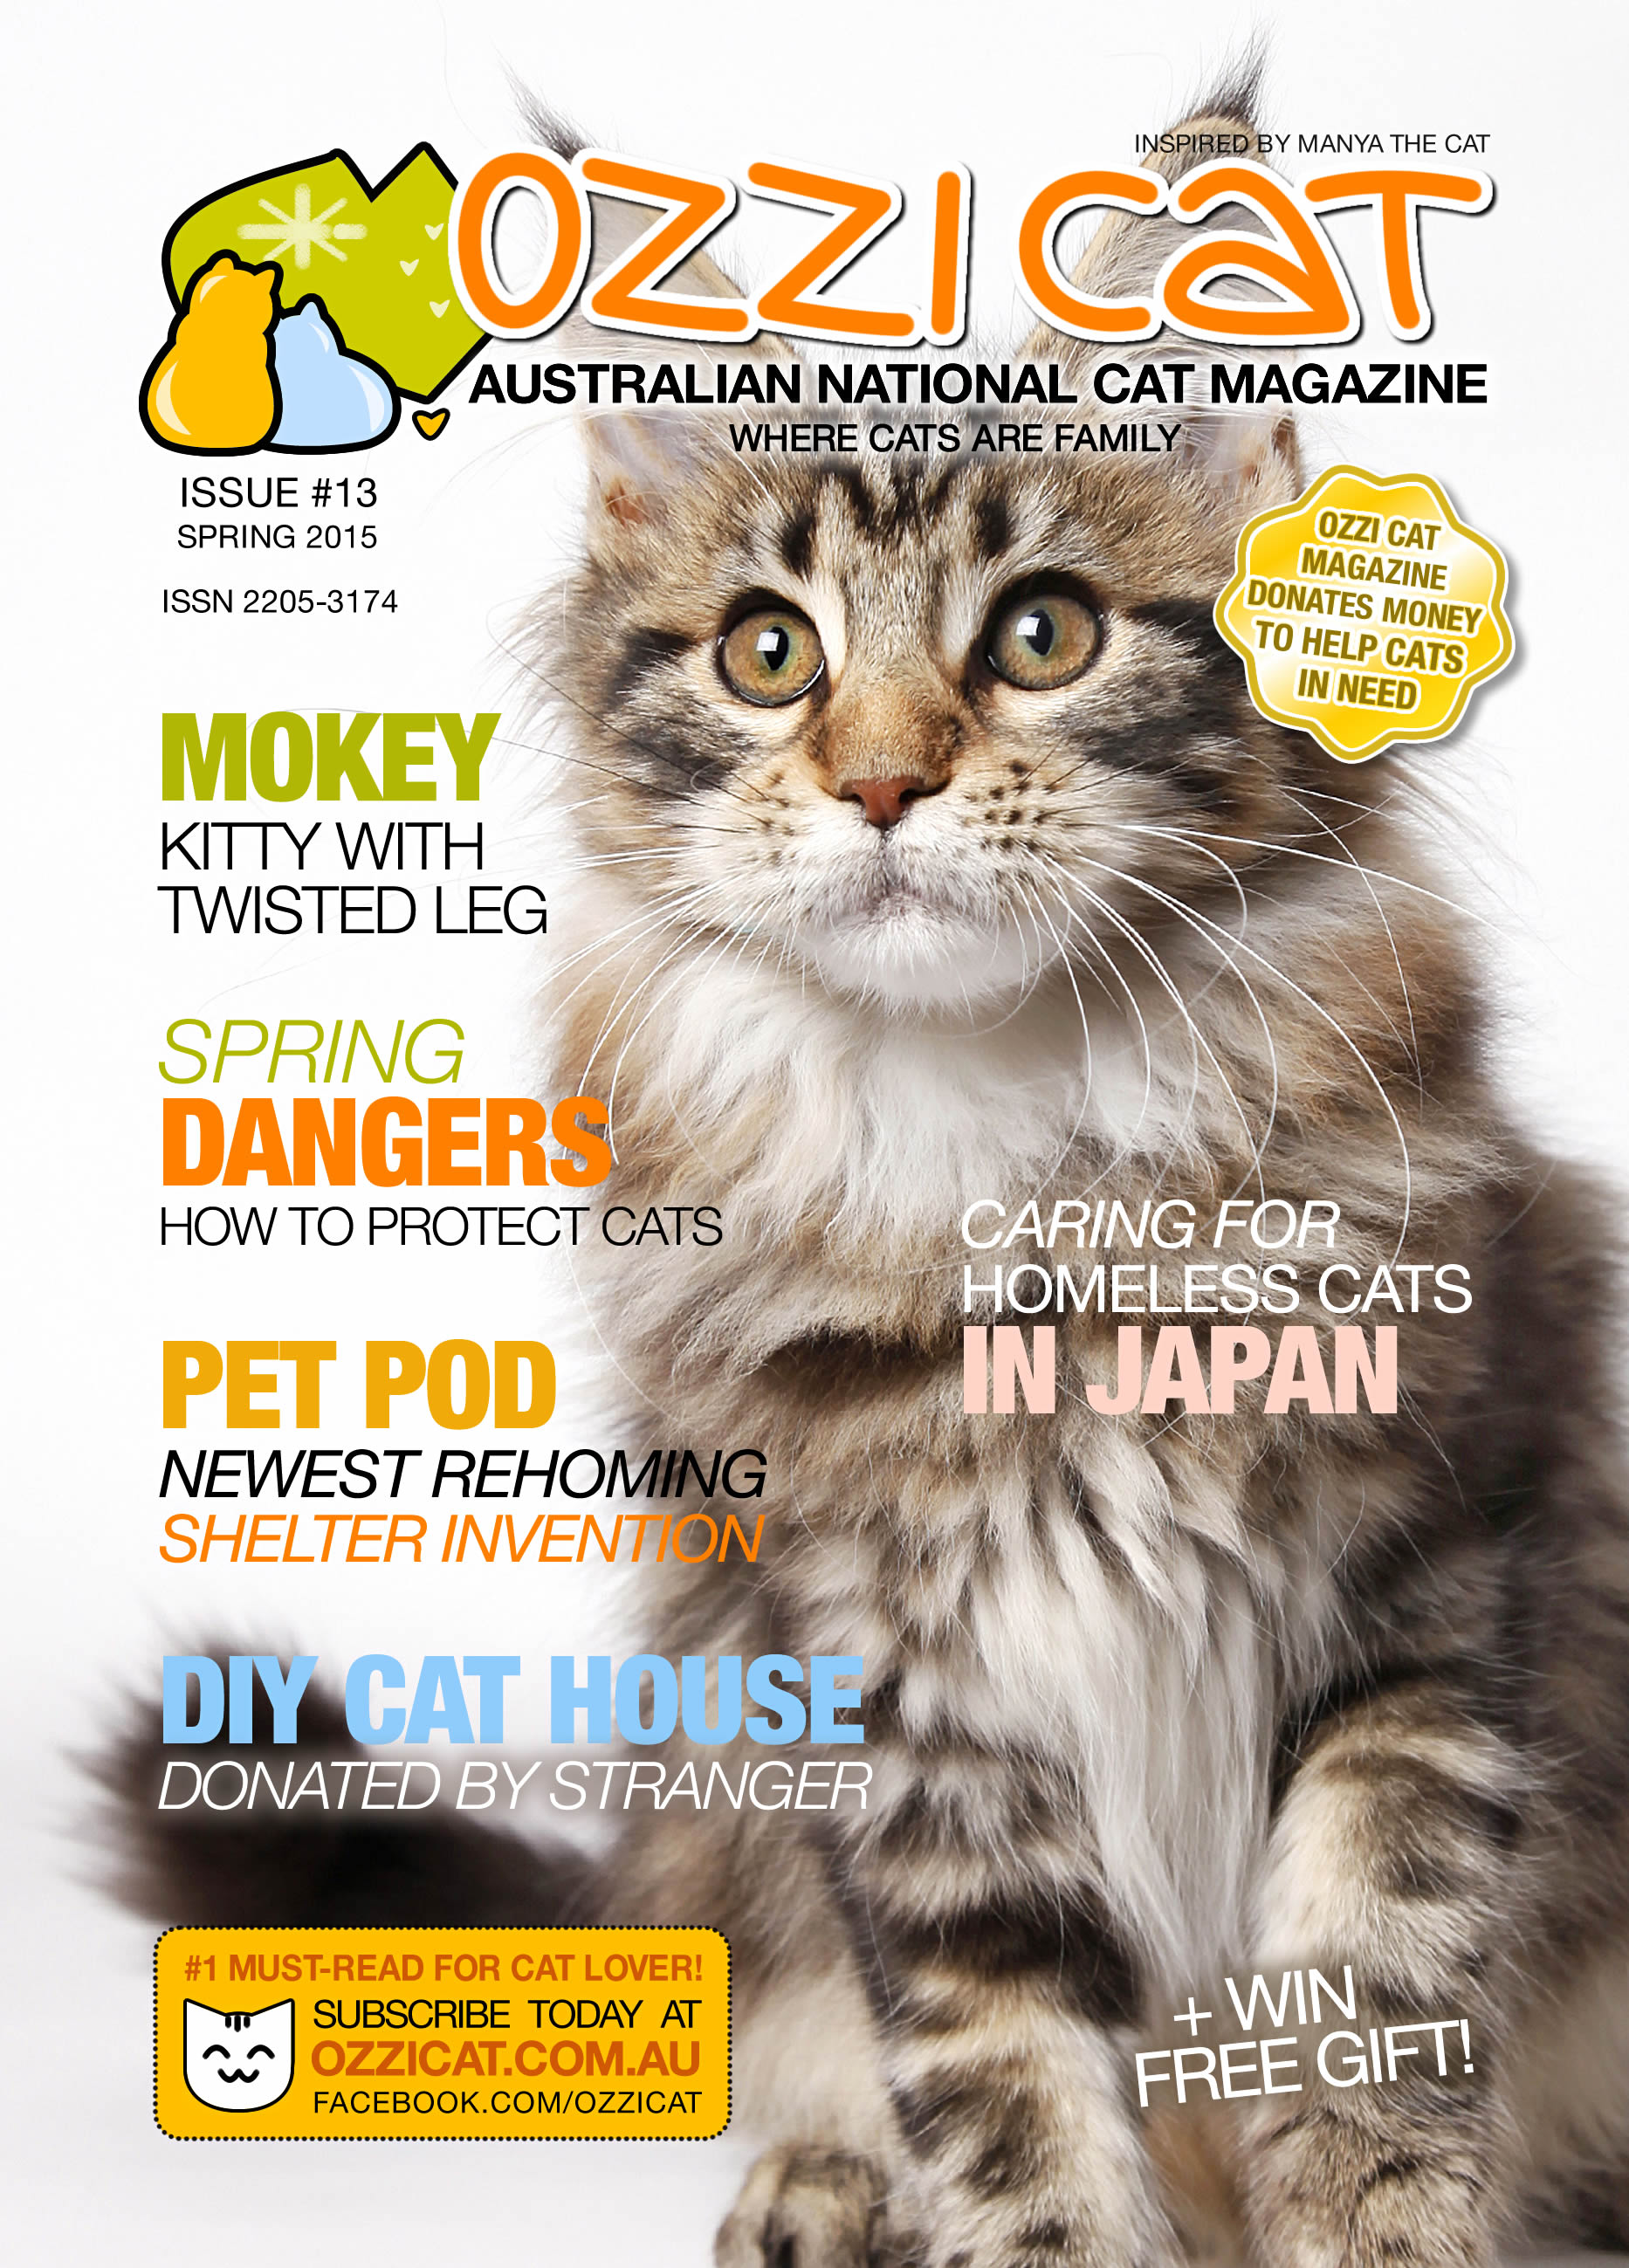 Ozzi Cat - Australian National Cat Magazine - Issue 13 - Spring 2015